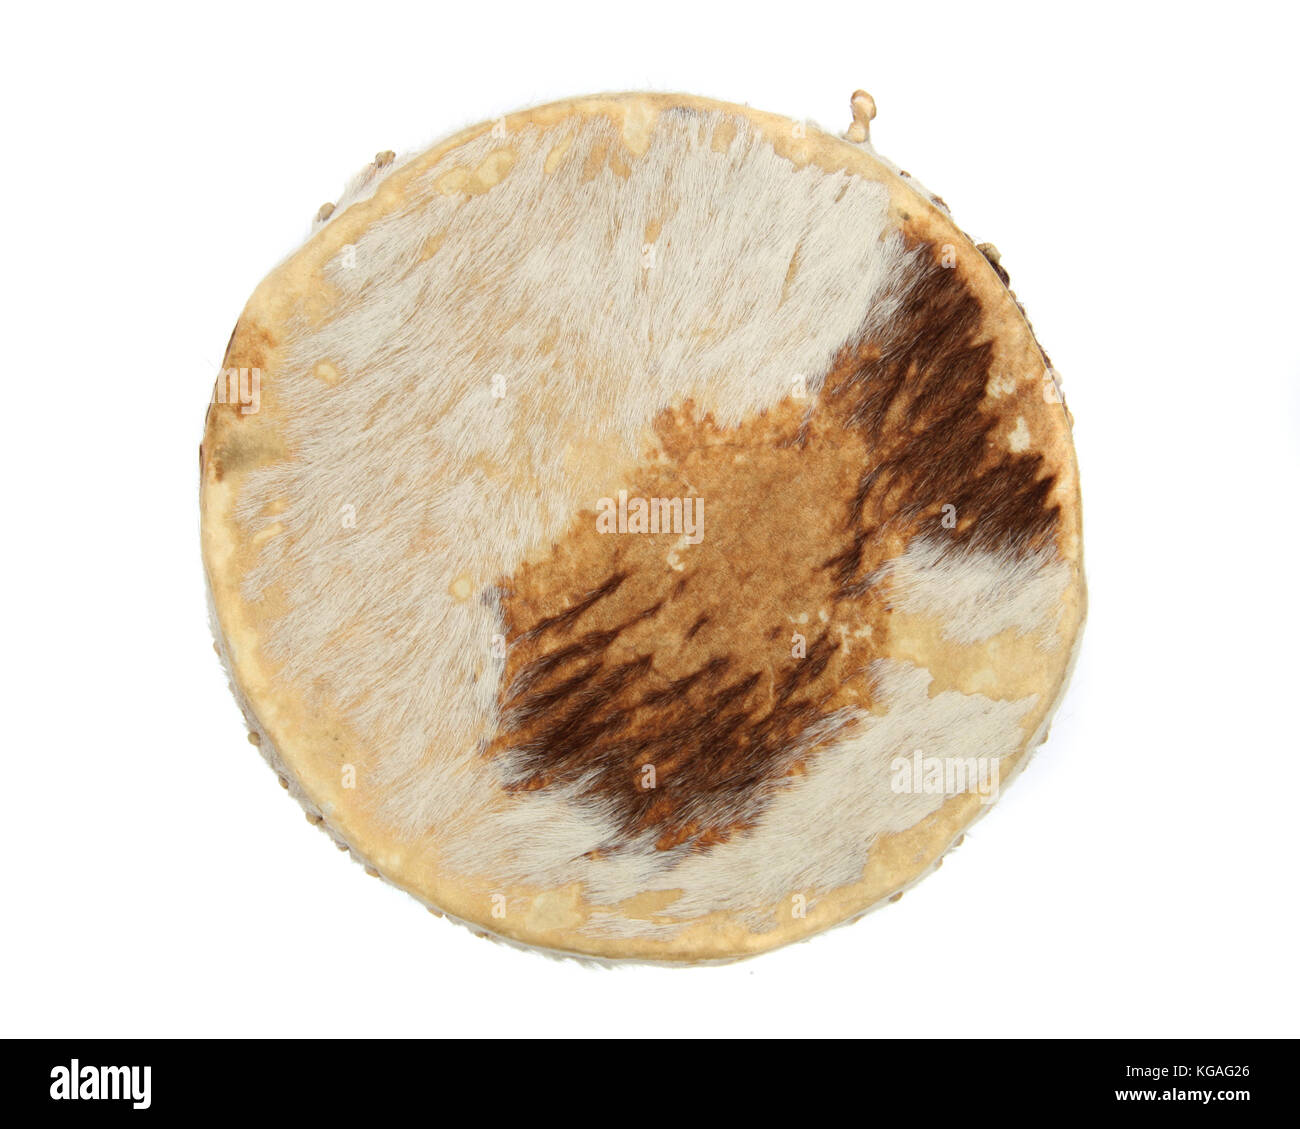 An African Drum - Stock Image